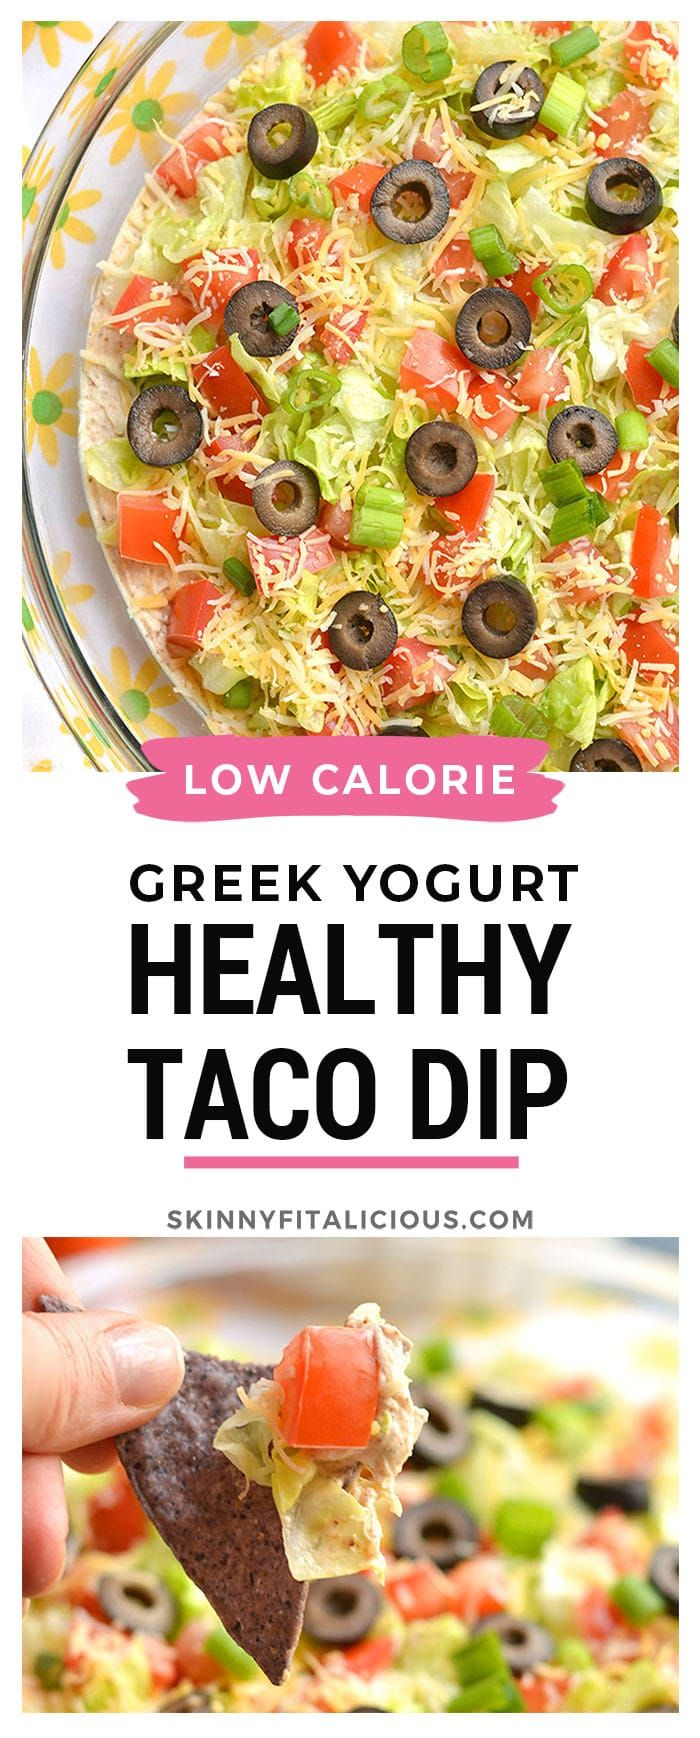 Healthy Taco Dip with Greek Yogurt {GF, Low Calorie} - Skinny Fitalicious®